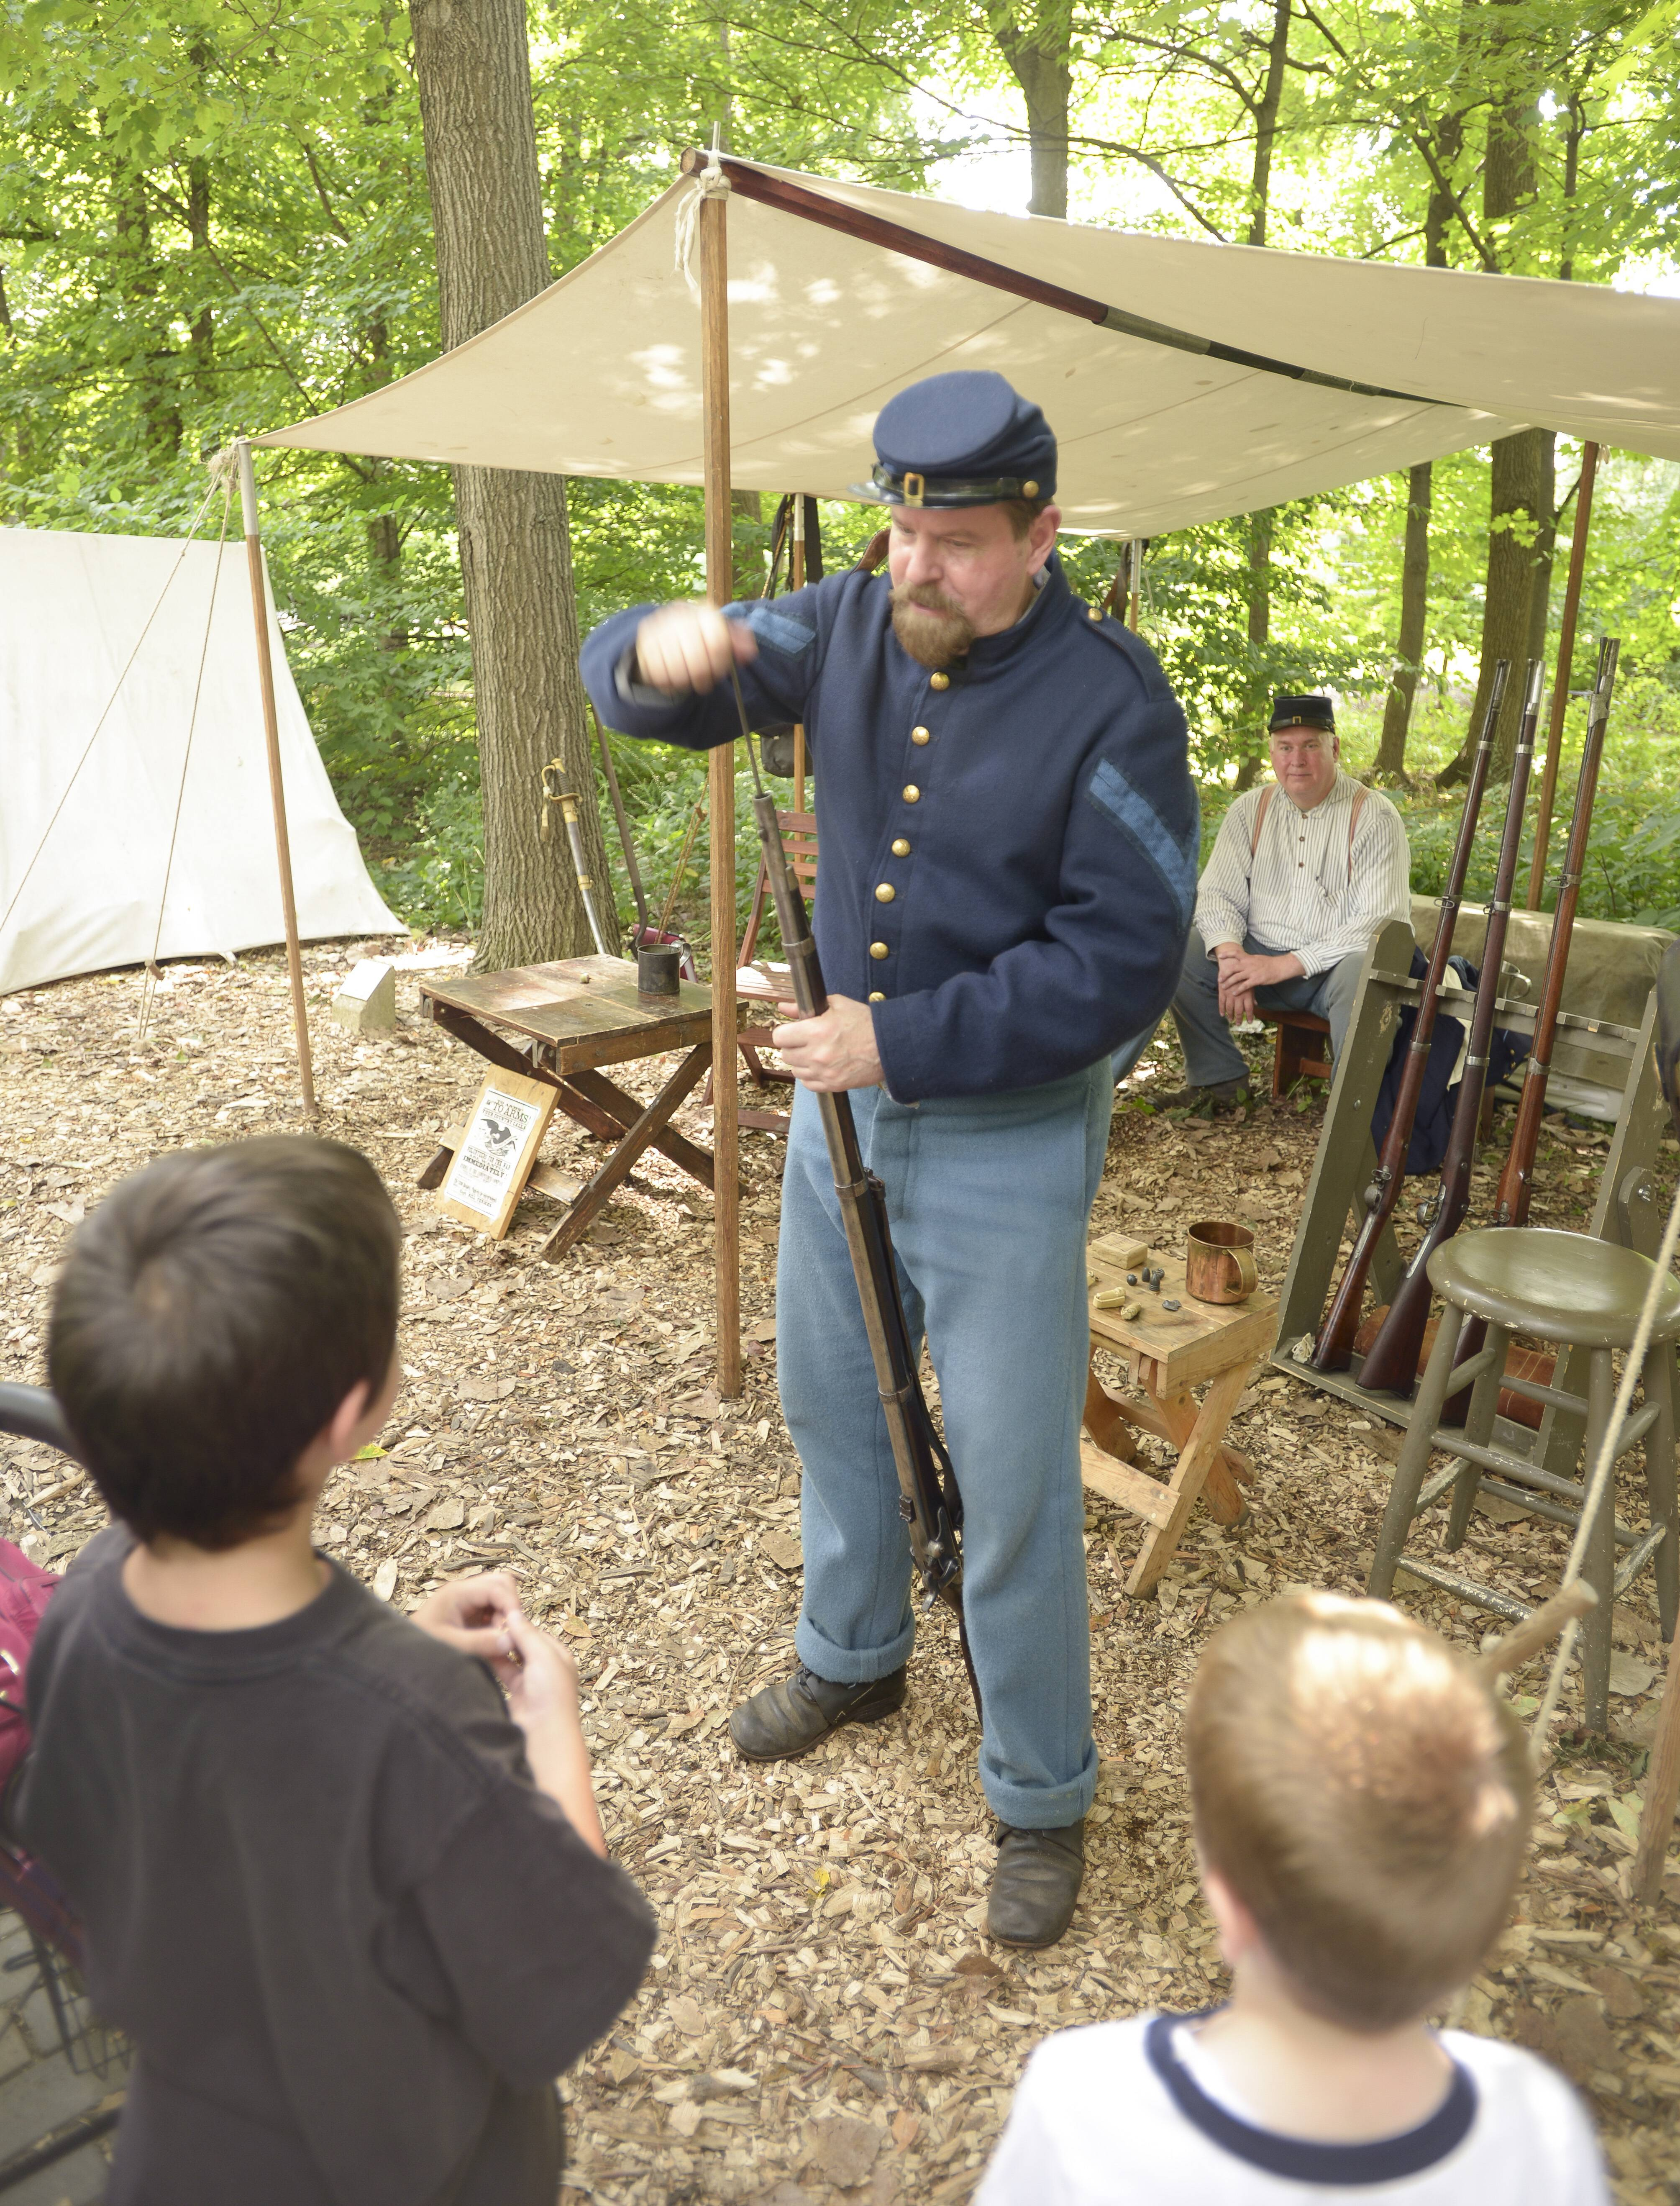 Bob Winter of Lombard, who has been involved in Civil War re-enacting for 25 years, shows how to load a rifle during the Civil War Encampment on Sunday at Graue Mill and Museum in Oak Brook.